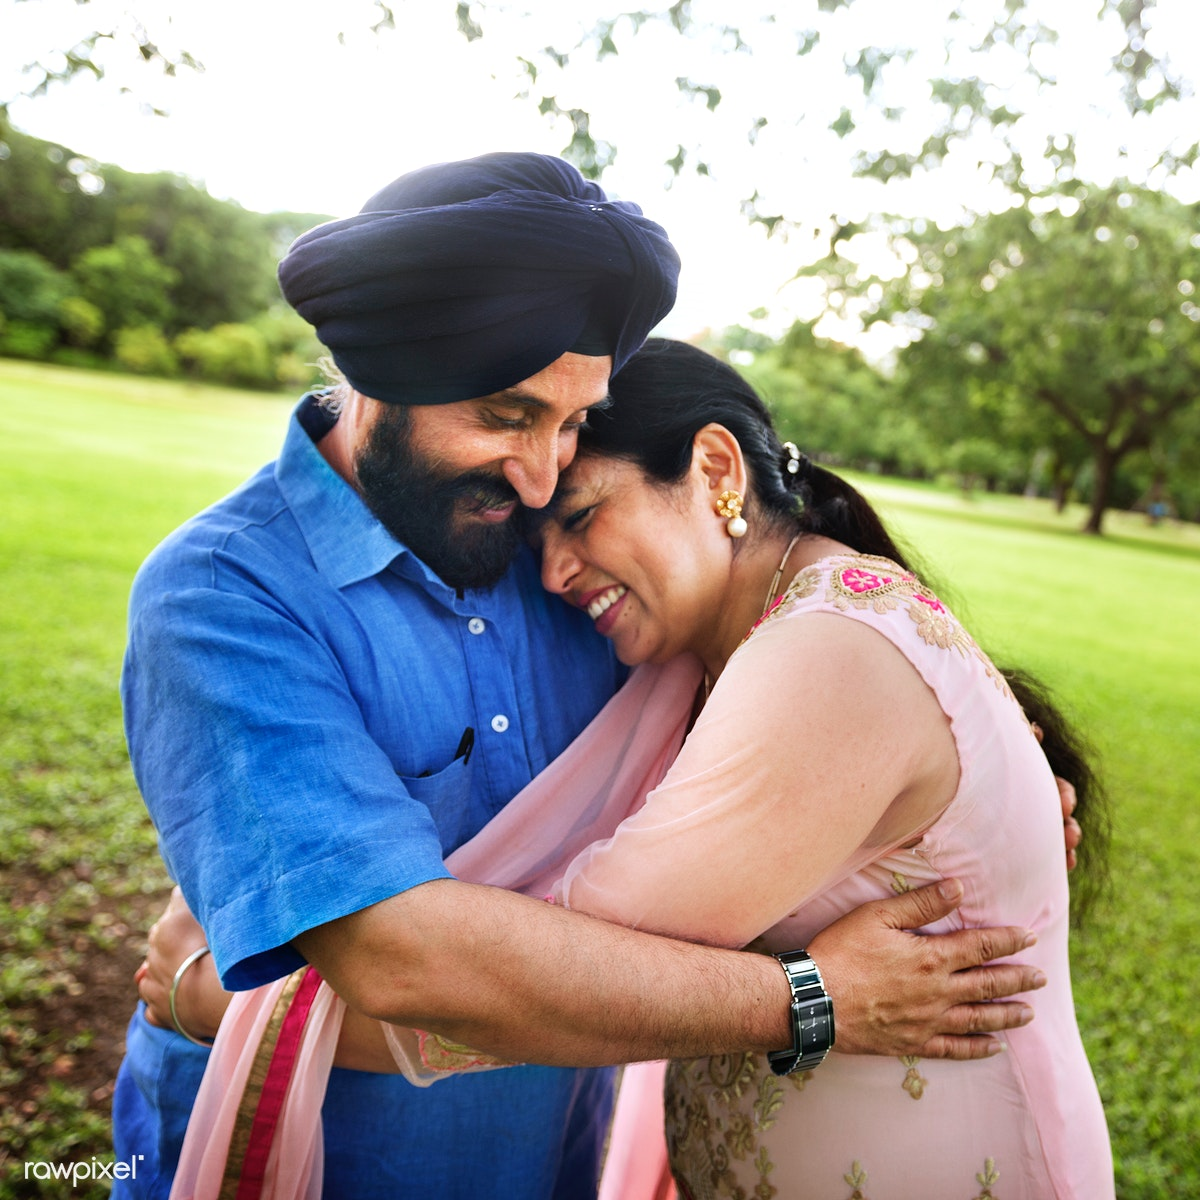 dating sites for seniors in india